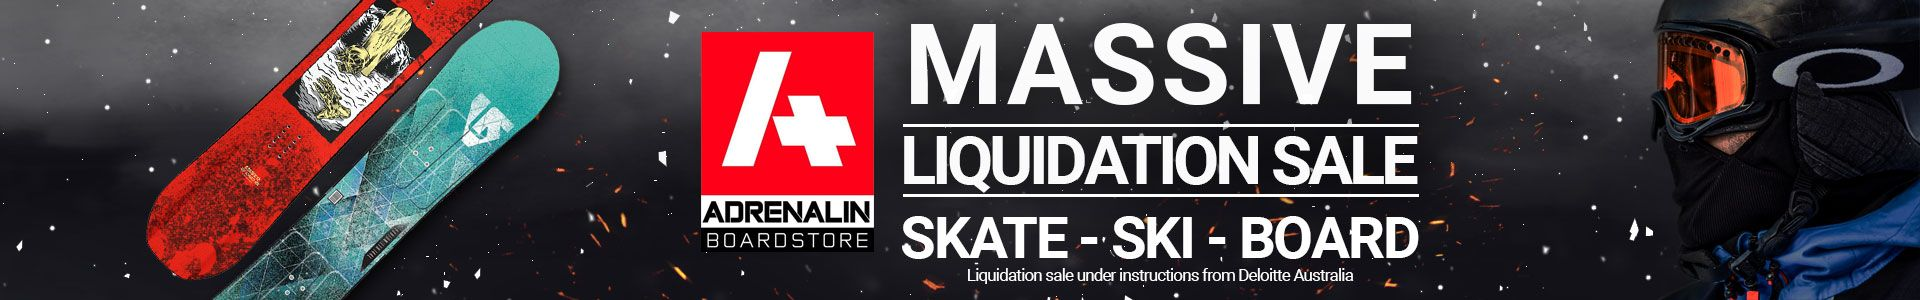 Arenalin Boardstore Massive Liquidation Sale - Skate Ski Board